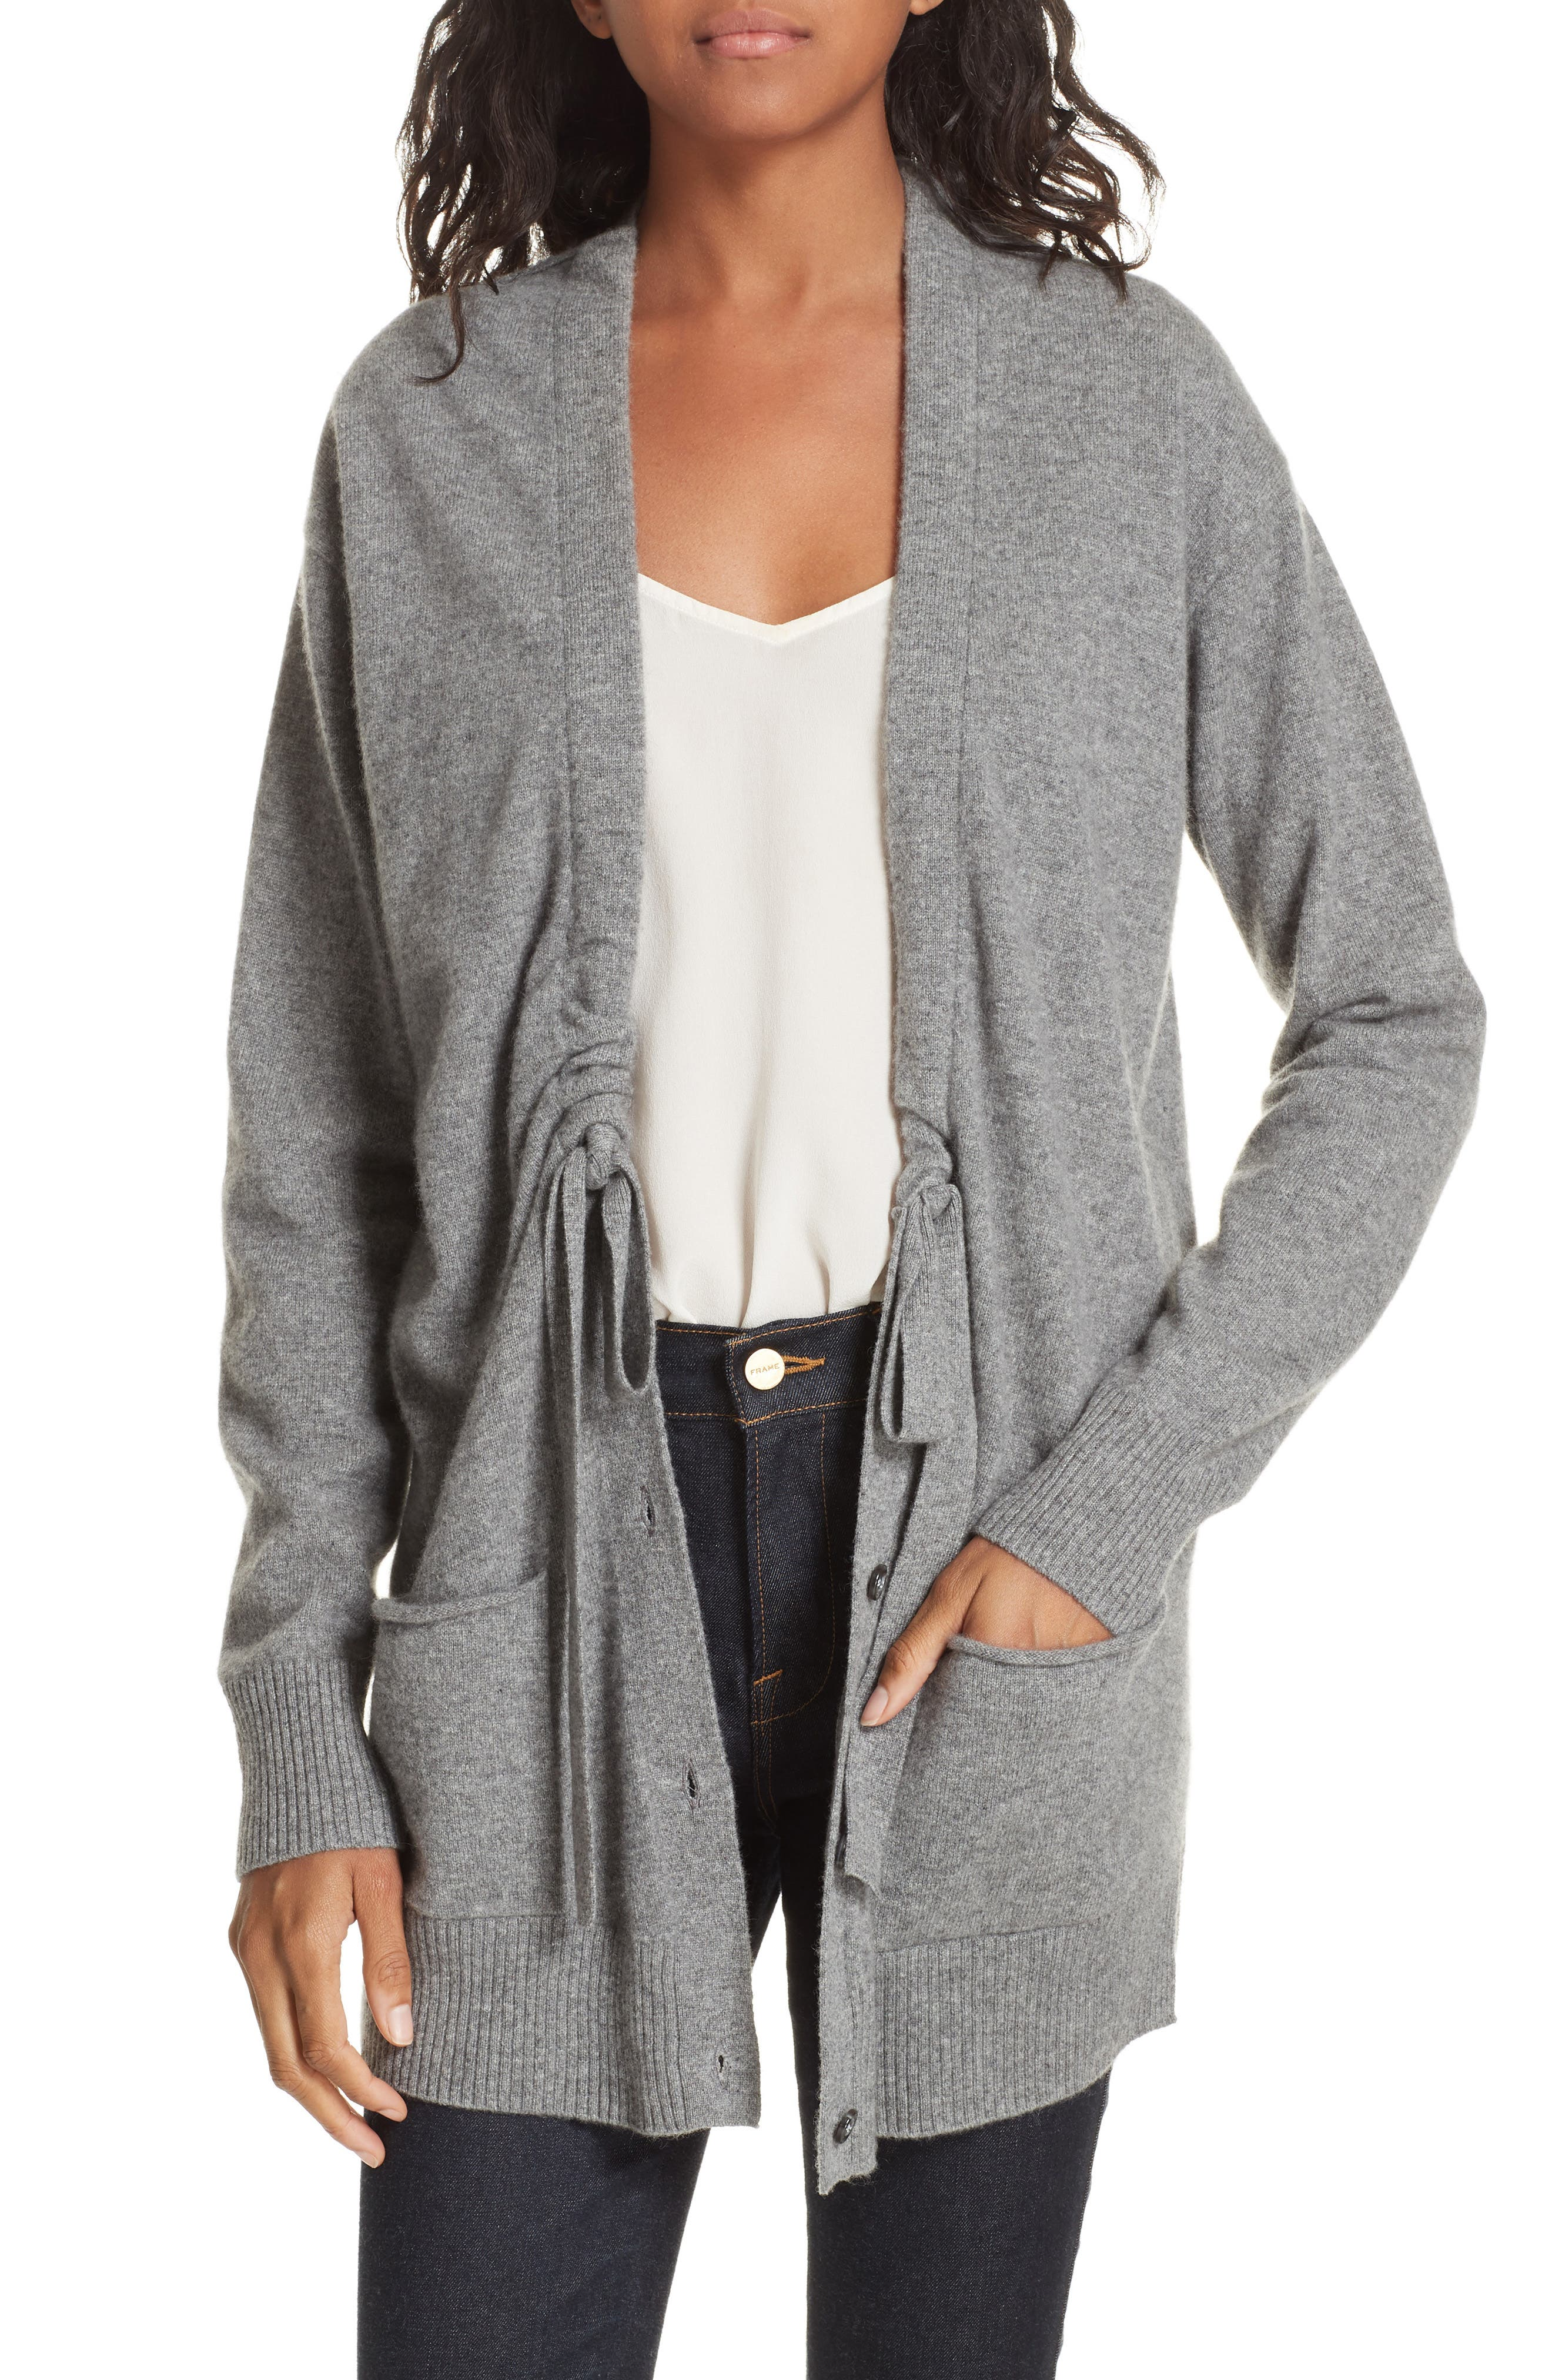 Bray Cashmere Cardigan,                             Main thumbnail 1, color,                             HEATHER GREY